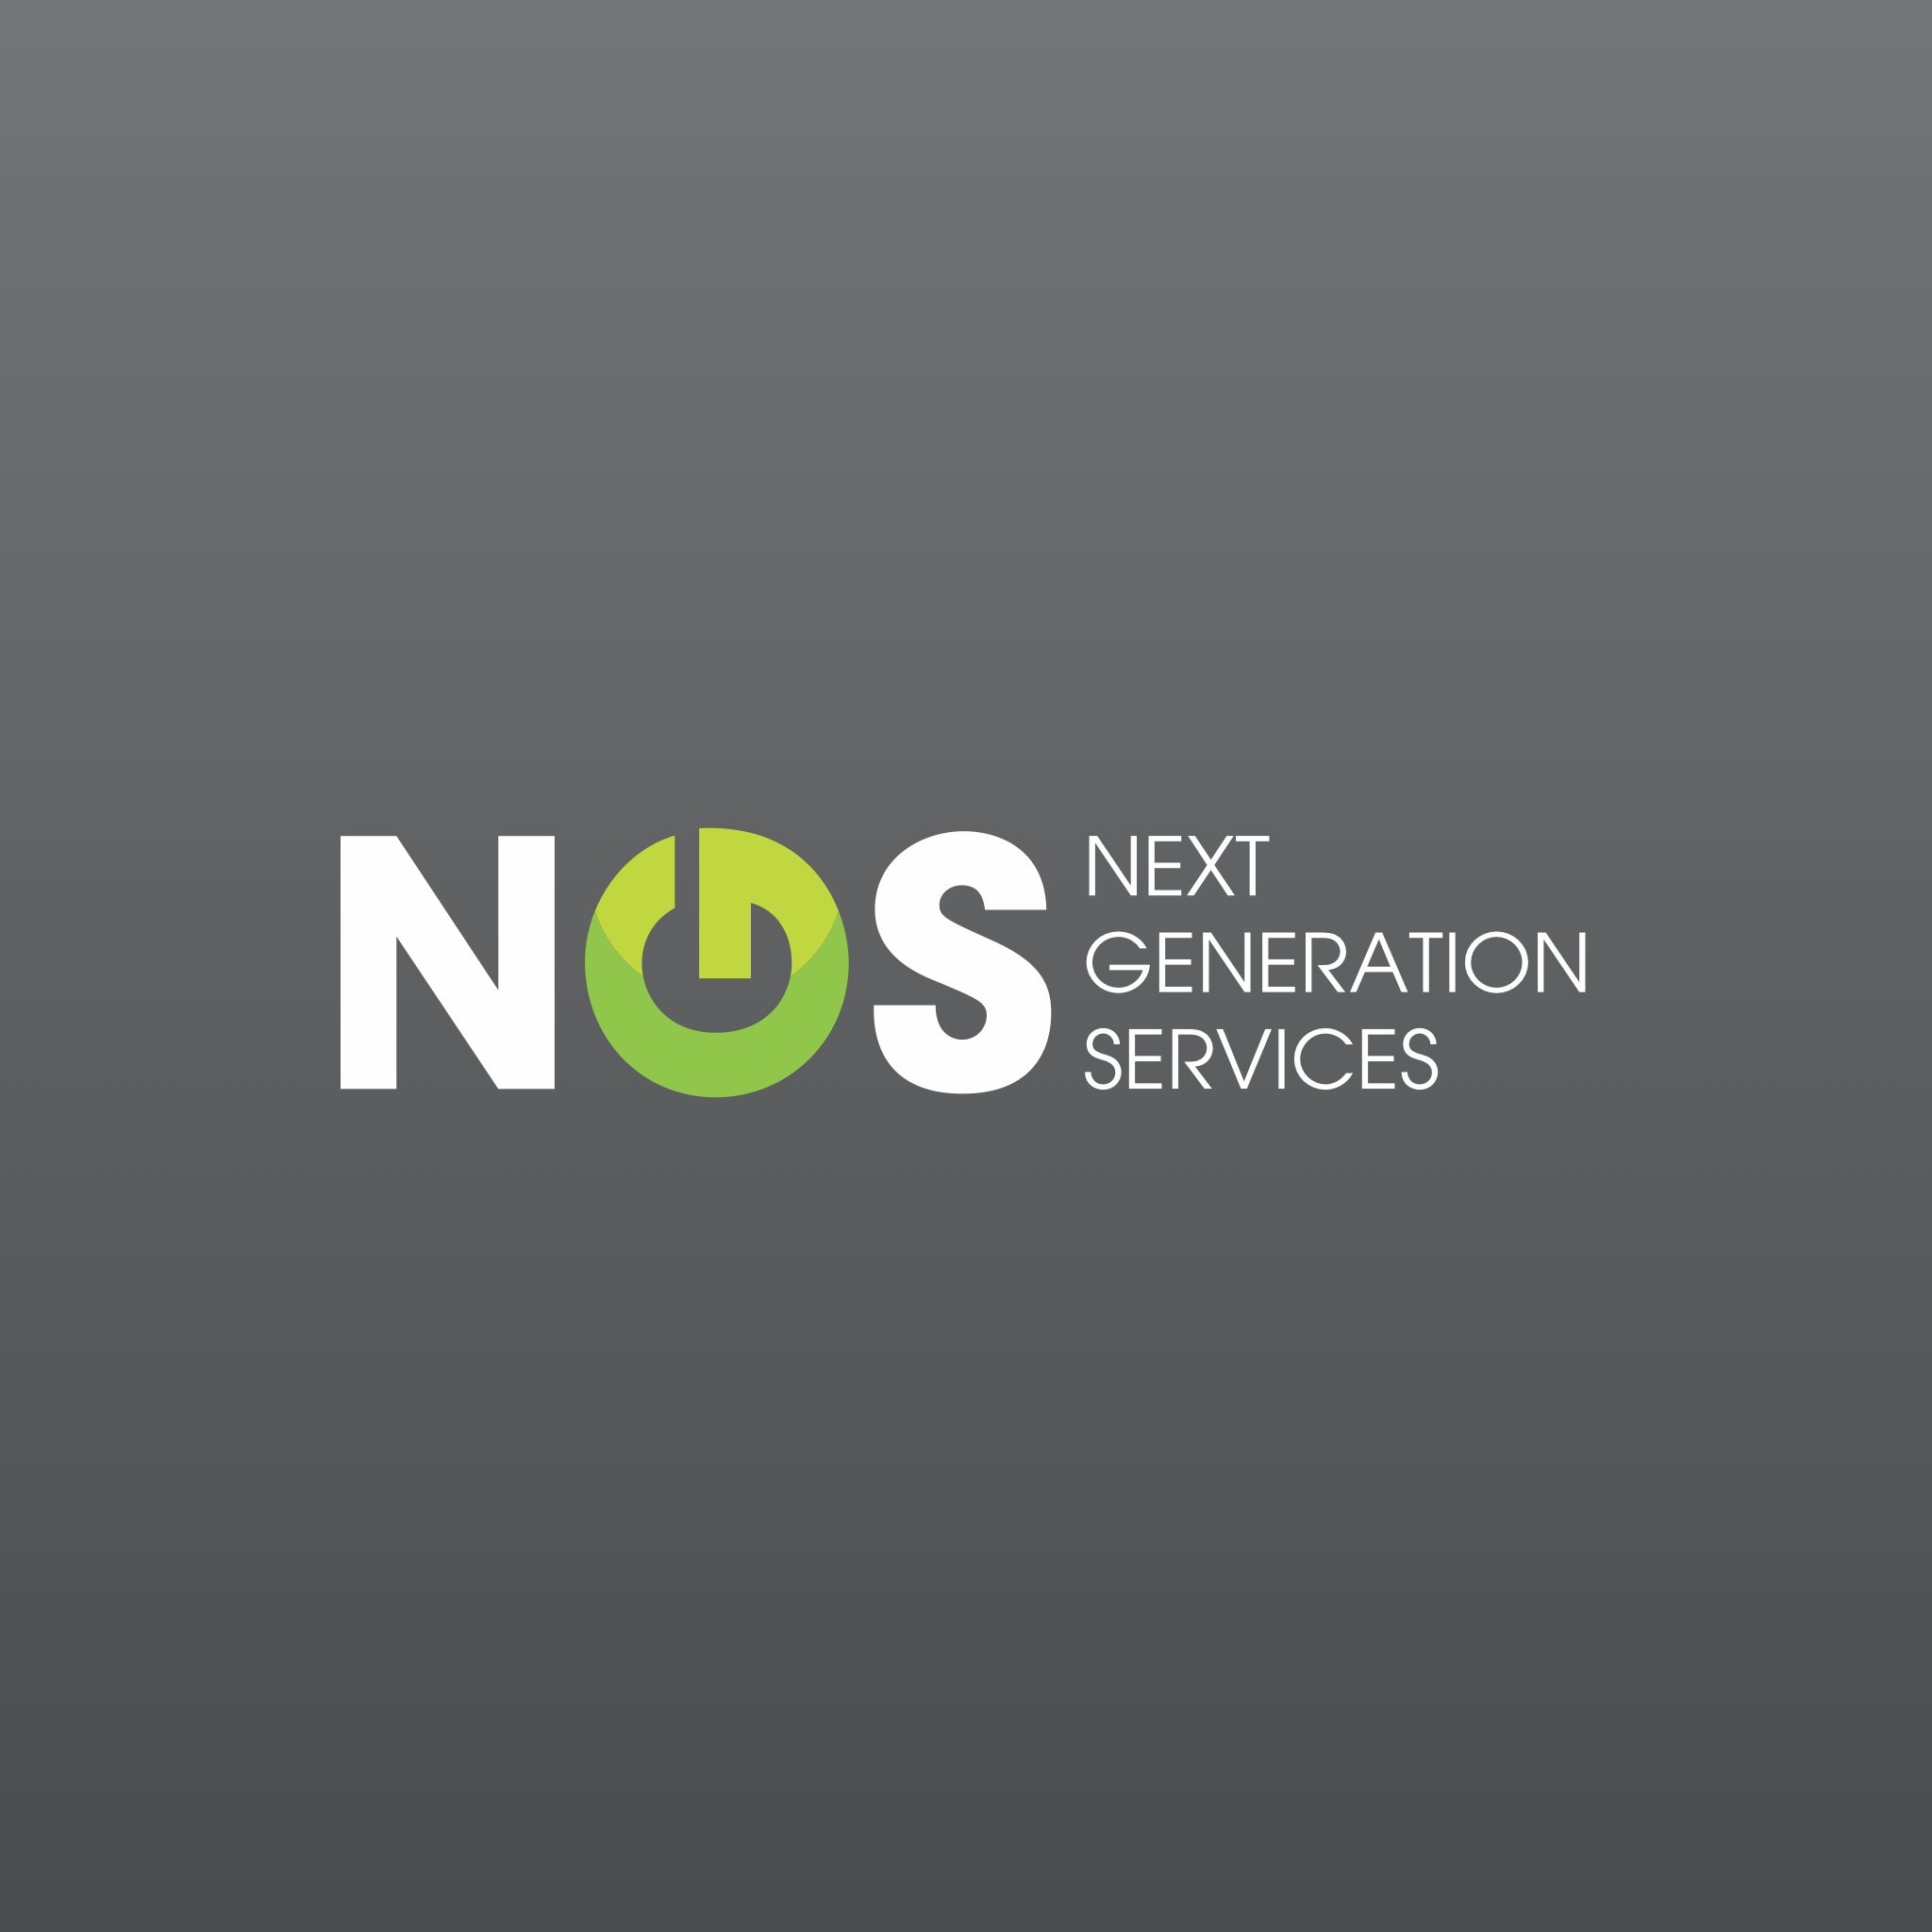 NGS | Next Generation Services